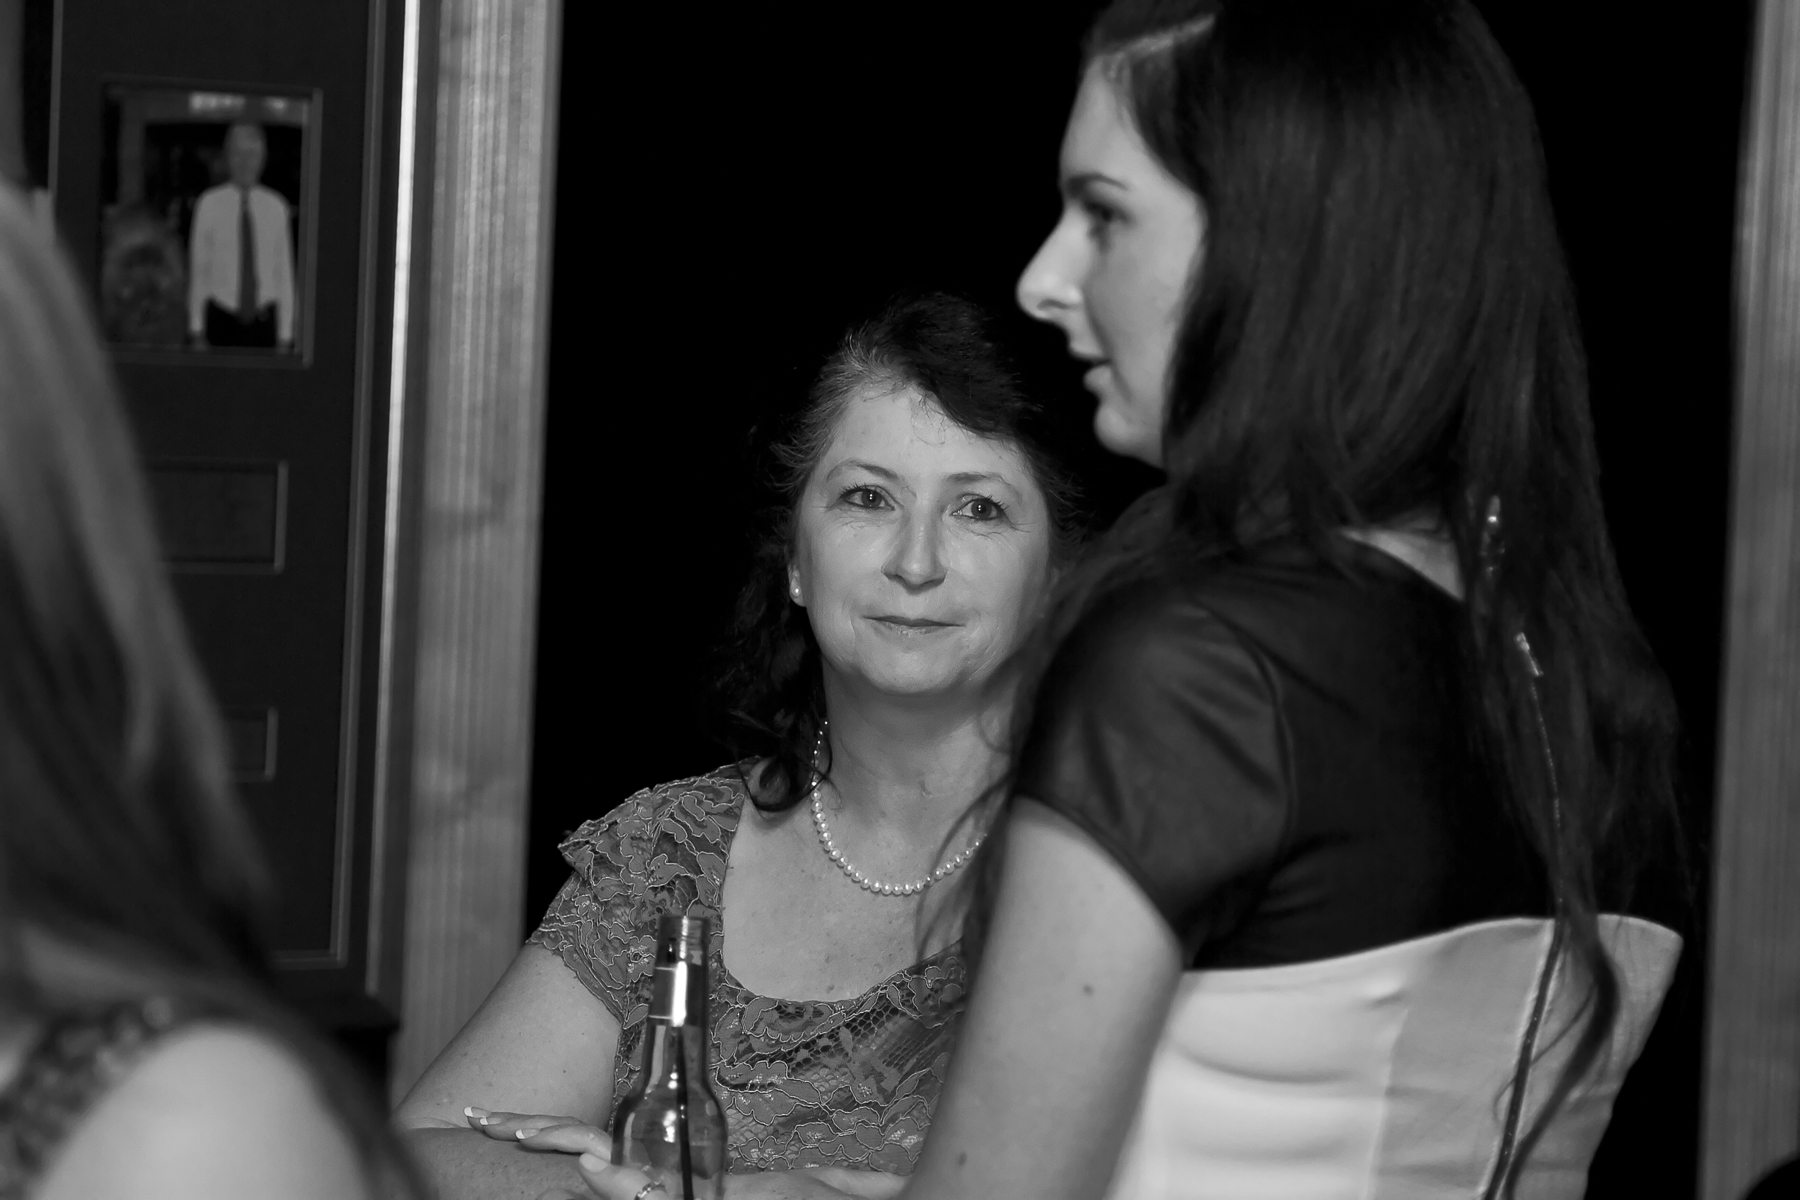 Tanya & Matts Engagement 014 BW.jpg